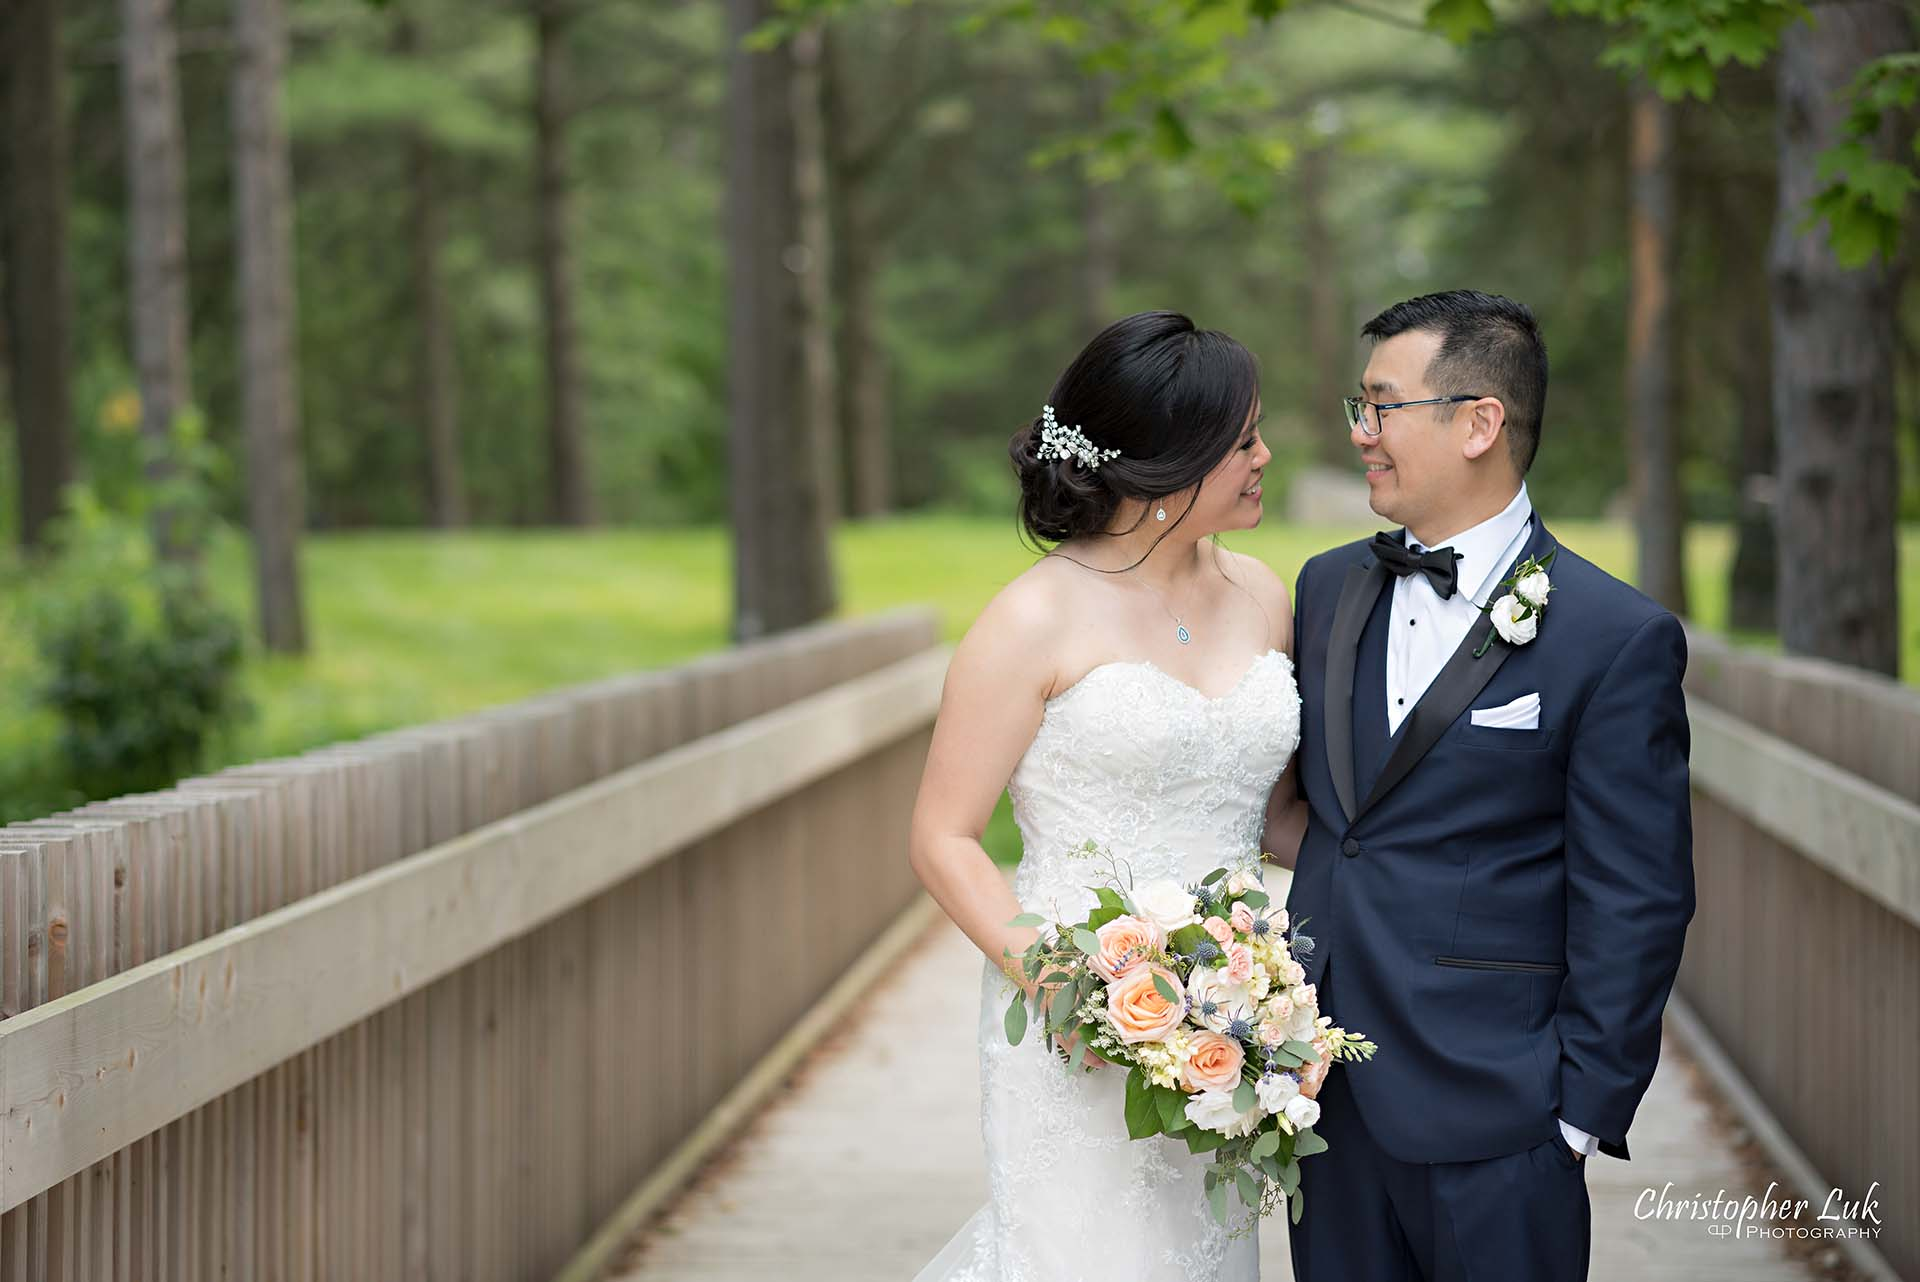 Christopher Luk Toronto Christian Community Church Kleinburg McMichael Art Gallery Vaughan Wedding Photographer Bride Groom Candid Natural Photojournalistic Wooden Bridge Boardwalk Intimate Leading Lines Looking at Each Other Smile